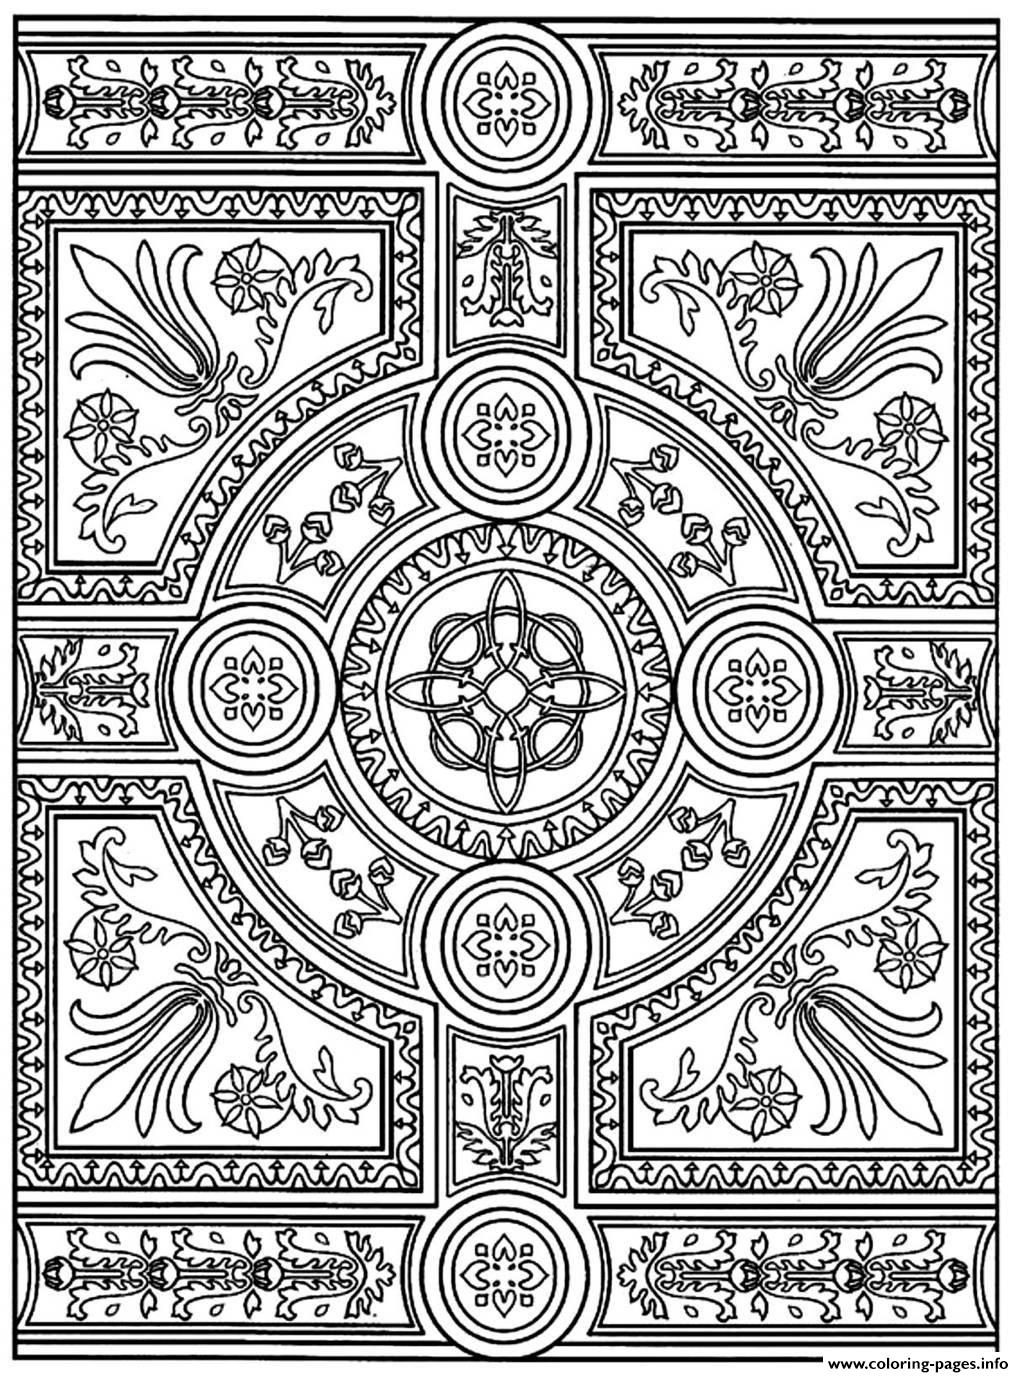 Adult Zen Anti Stress To Print Parquet Patterns Coloring Pages Download